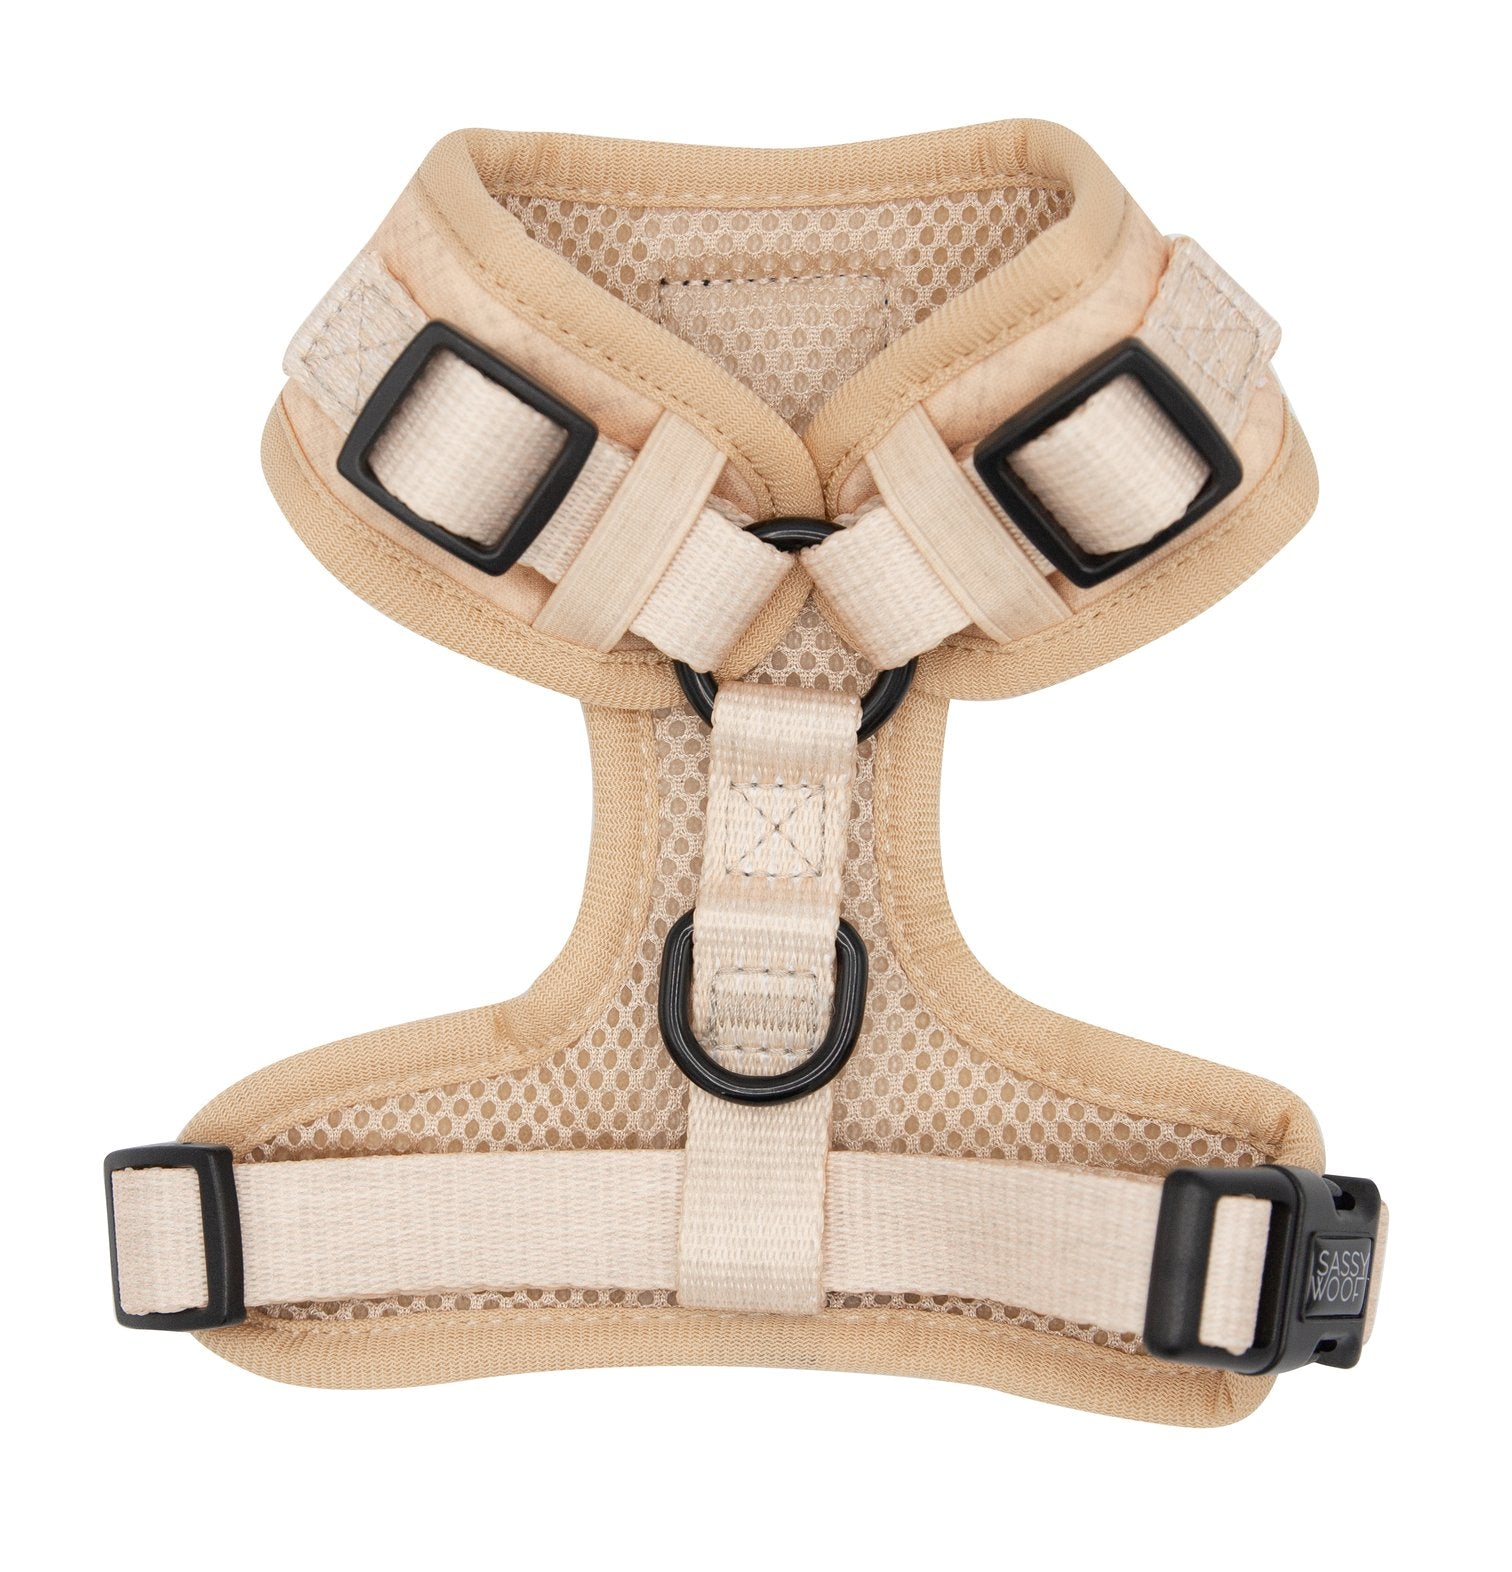 Pinot - Adjustable Harness